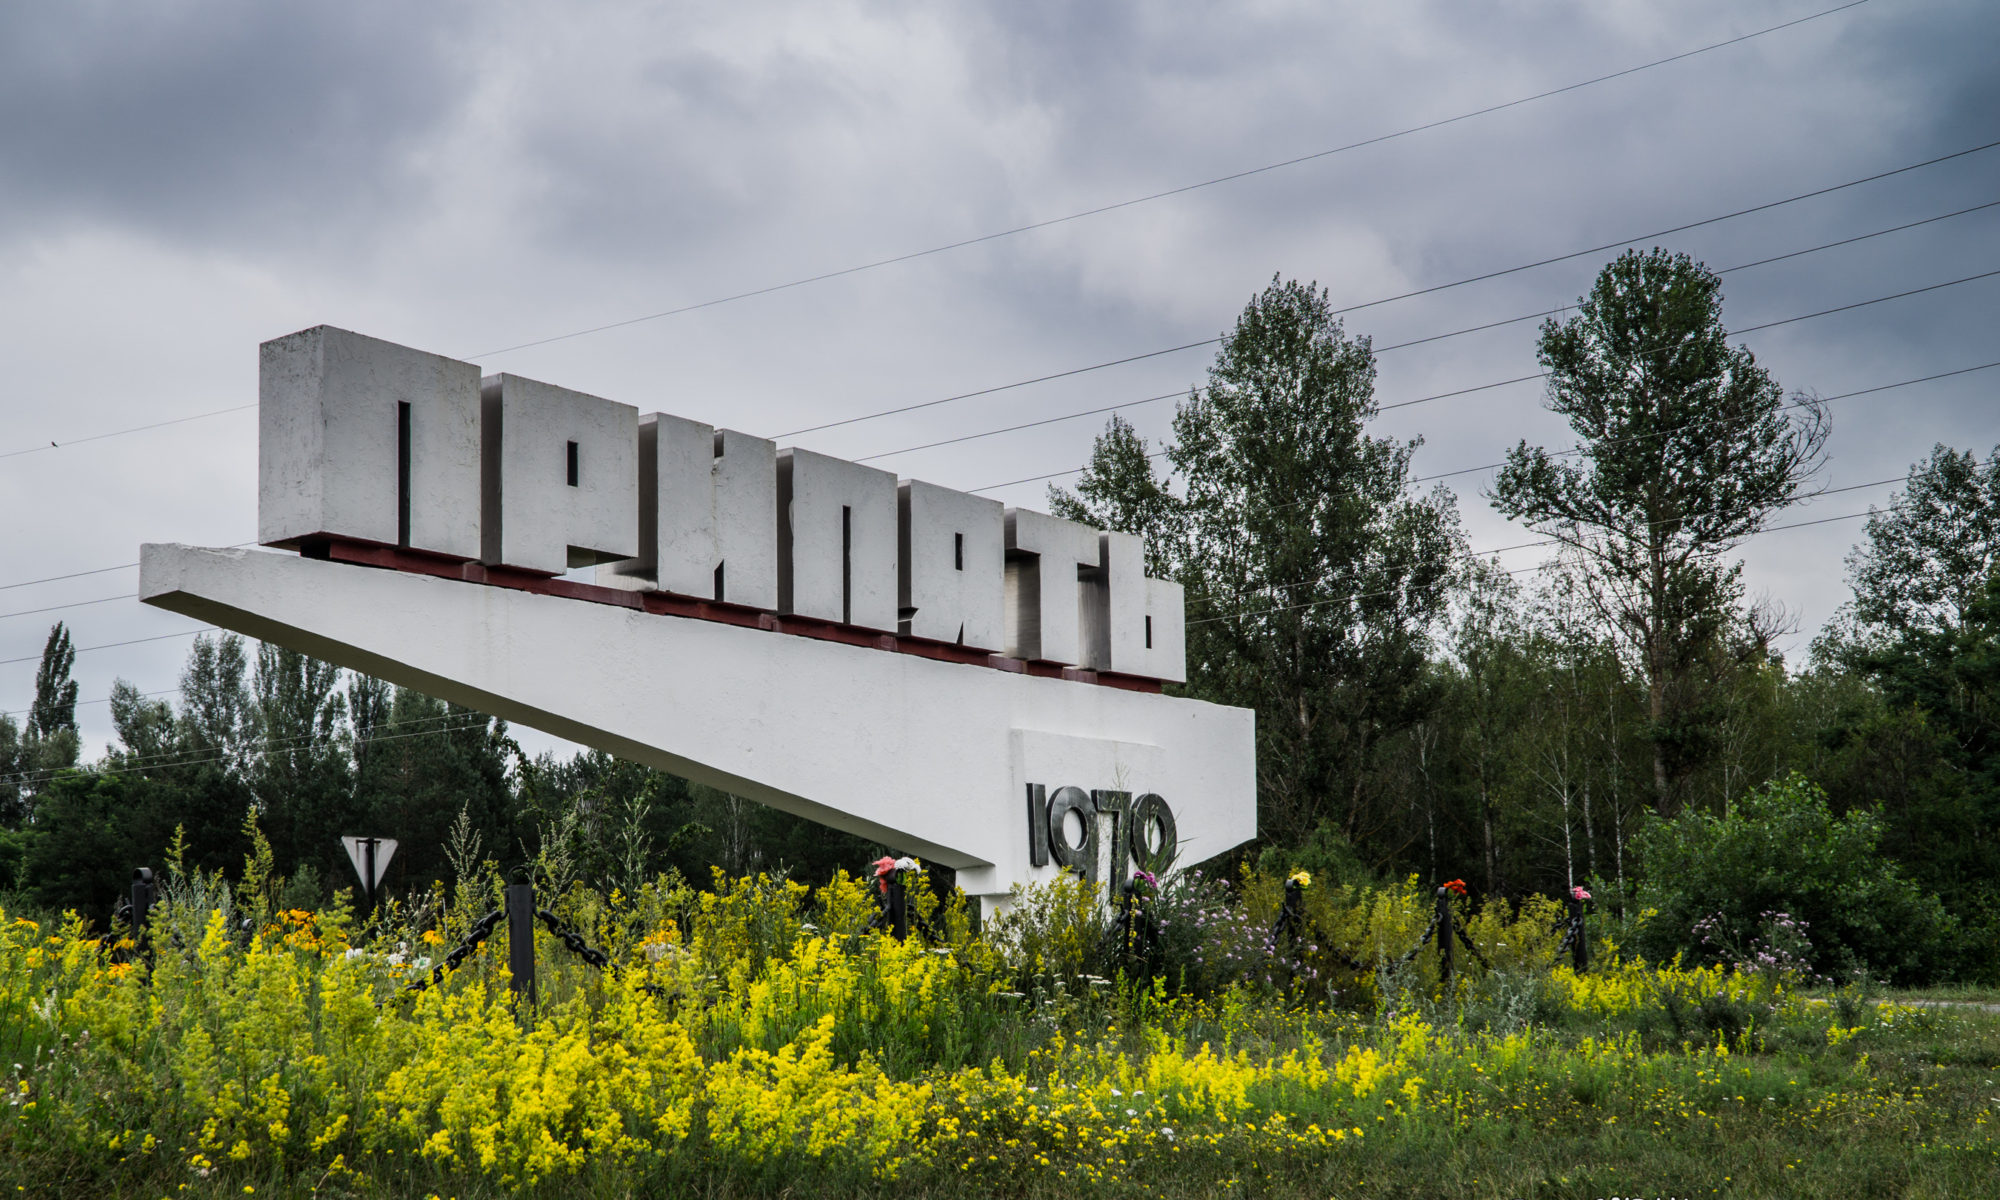 City sign for Prypiat, 1970